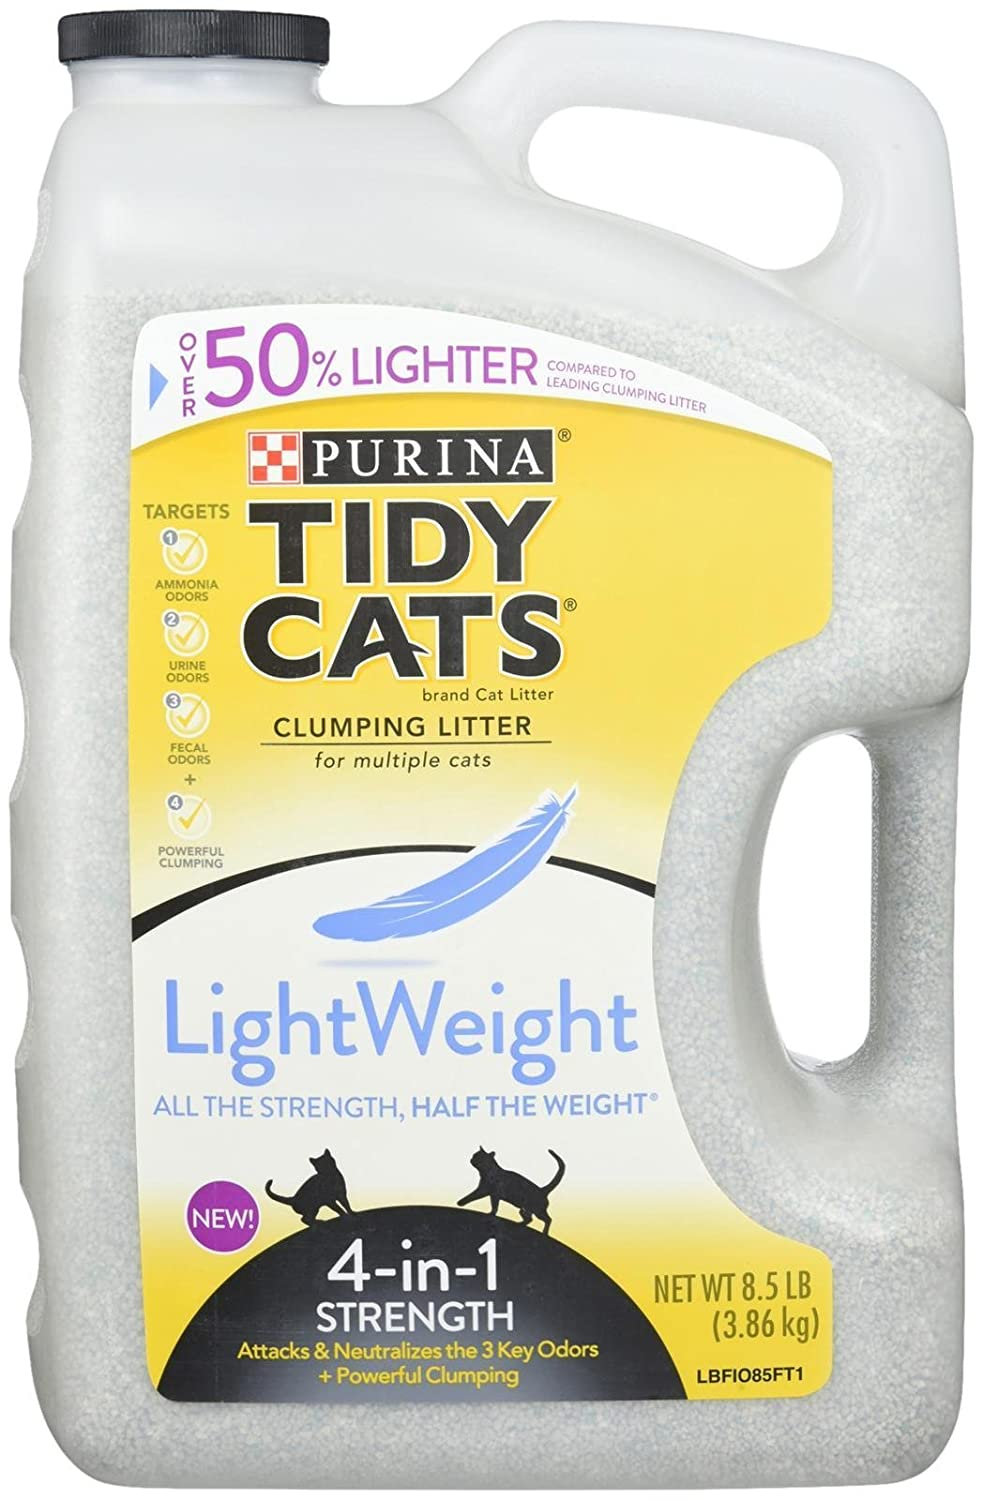 Purina Tidy Cats Lightweight 4 in 1 Strength Clumping Dust Free Litters